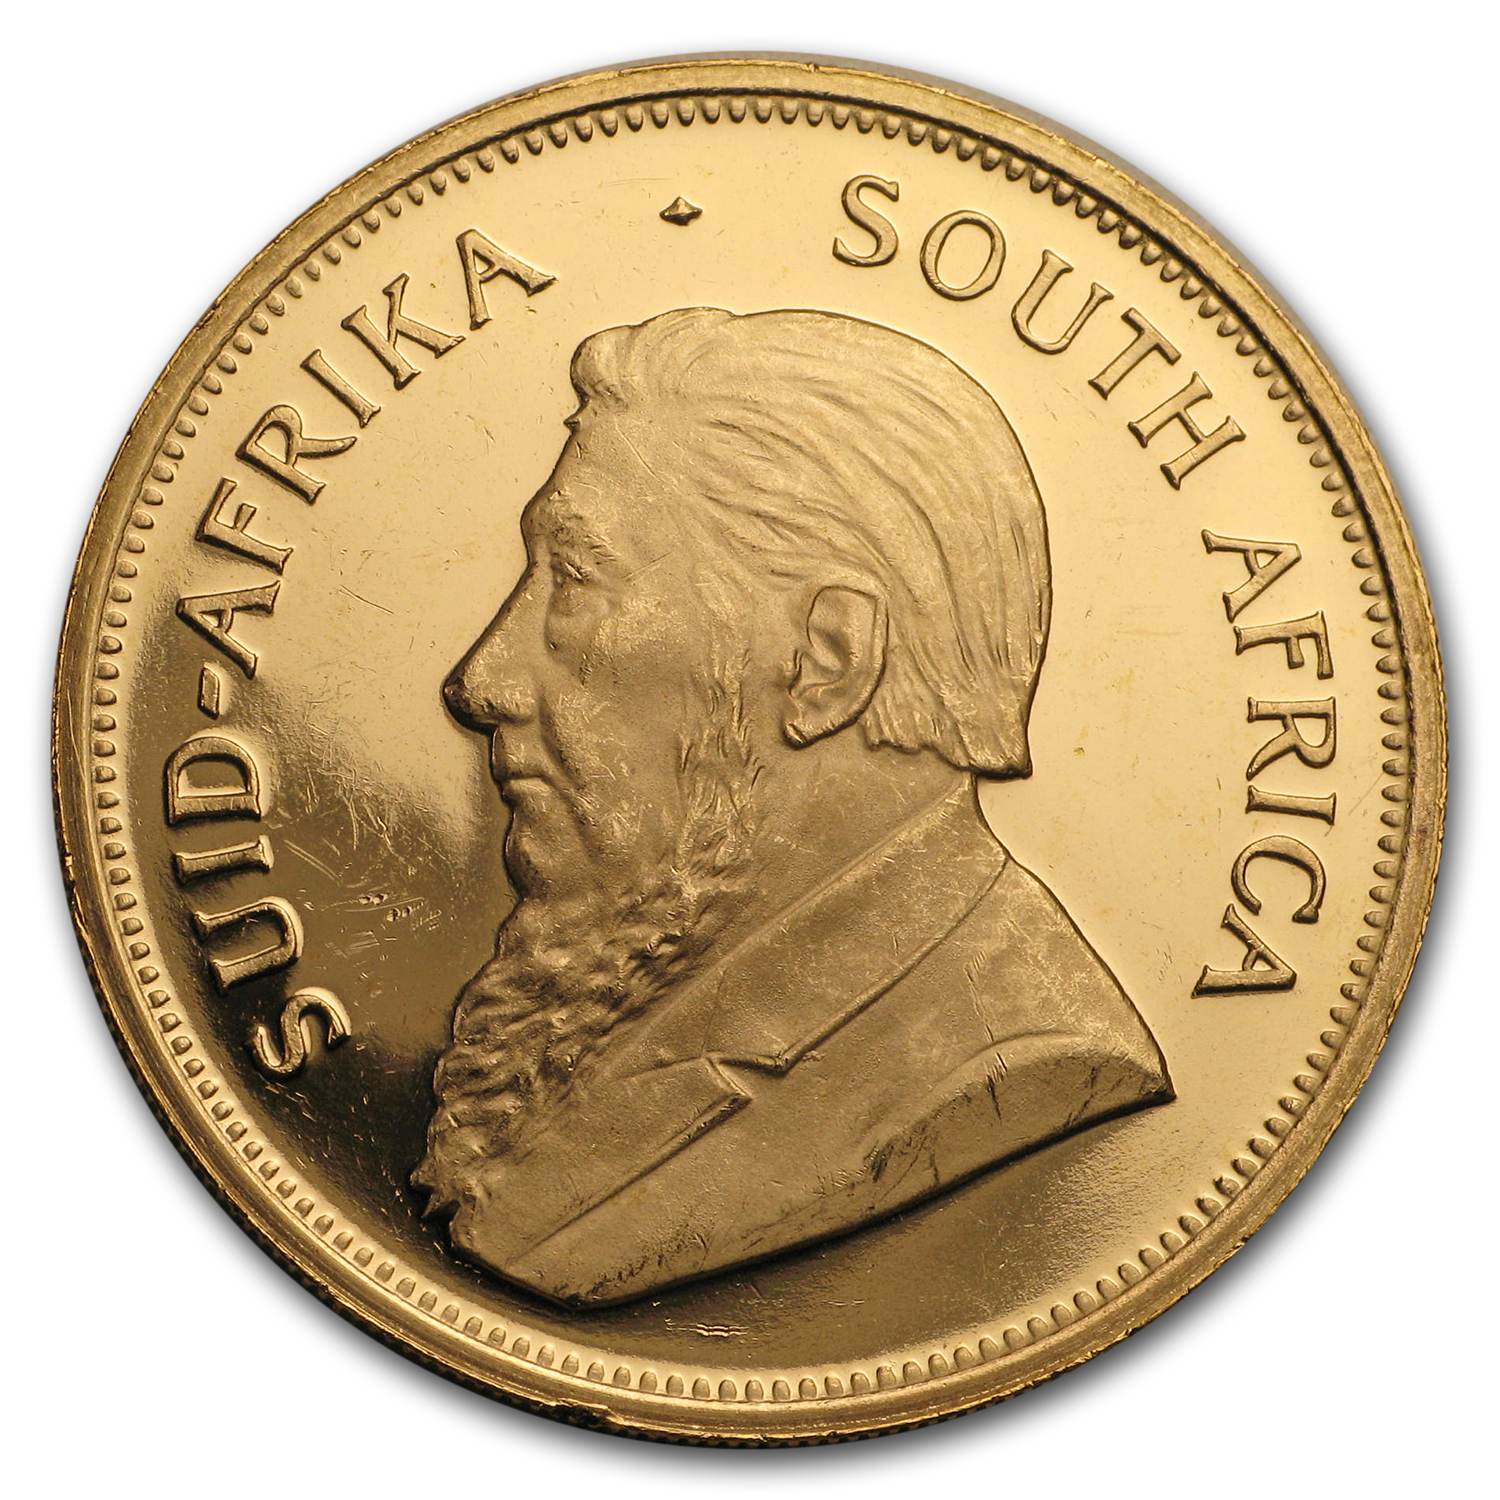 1988 South Africa 1 oz Proof Gold Krugerrand (Scruffy)